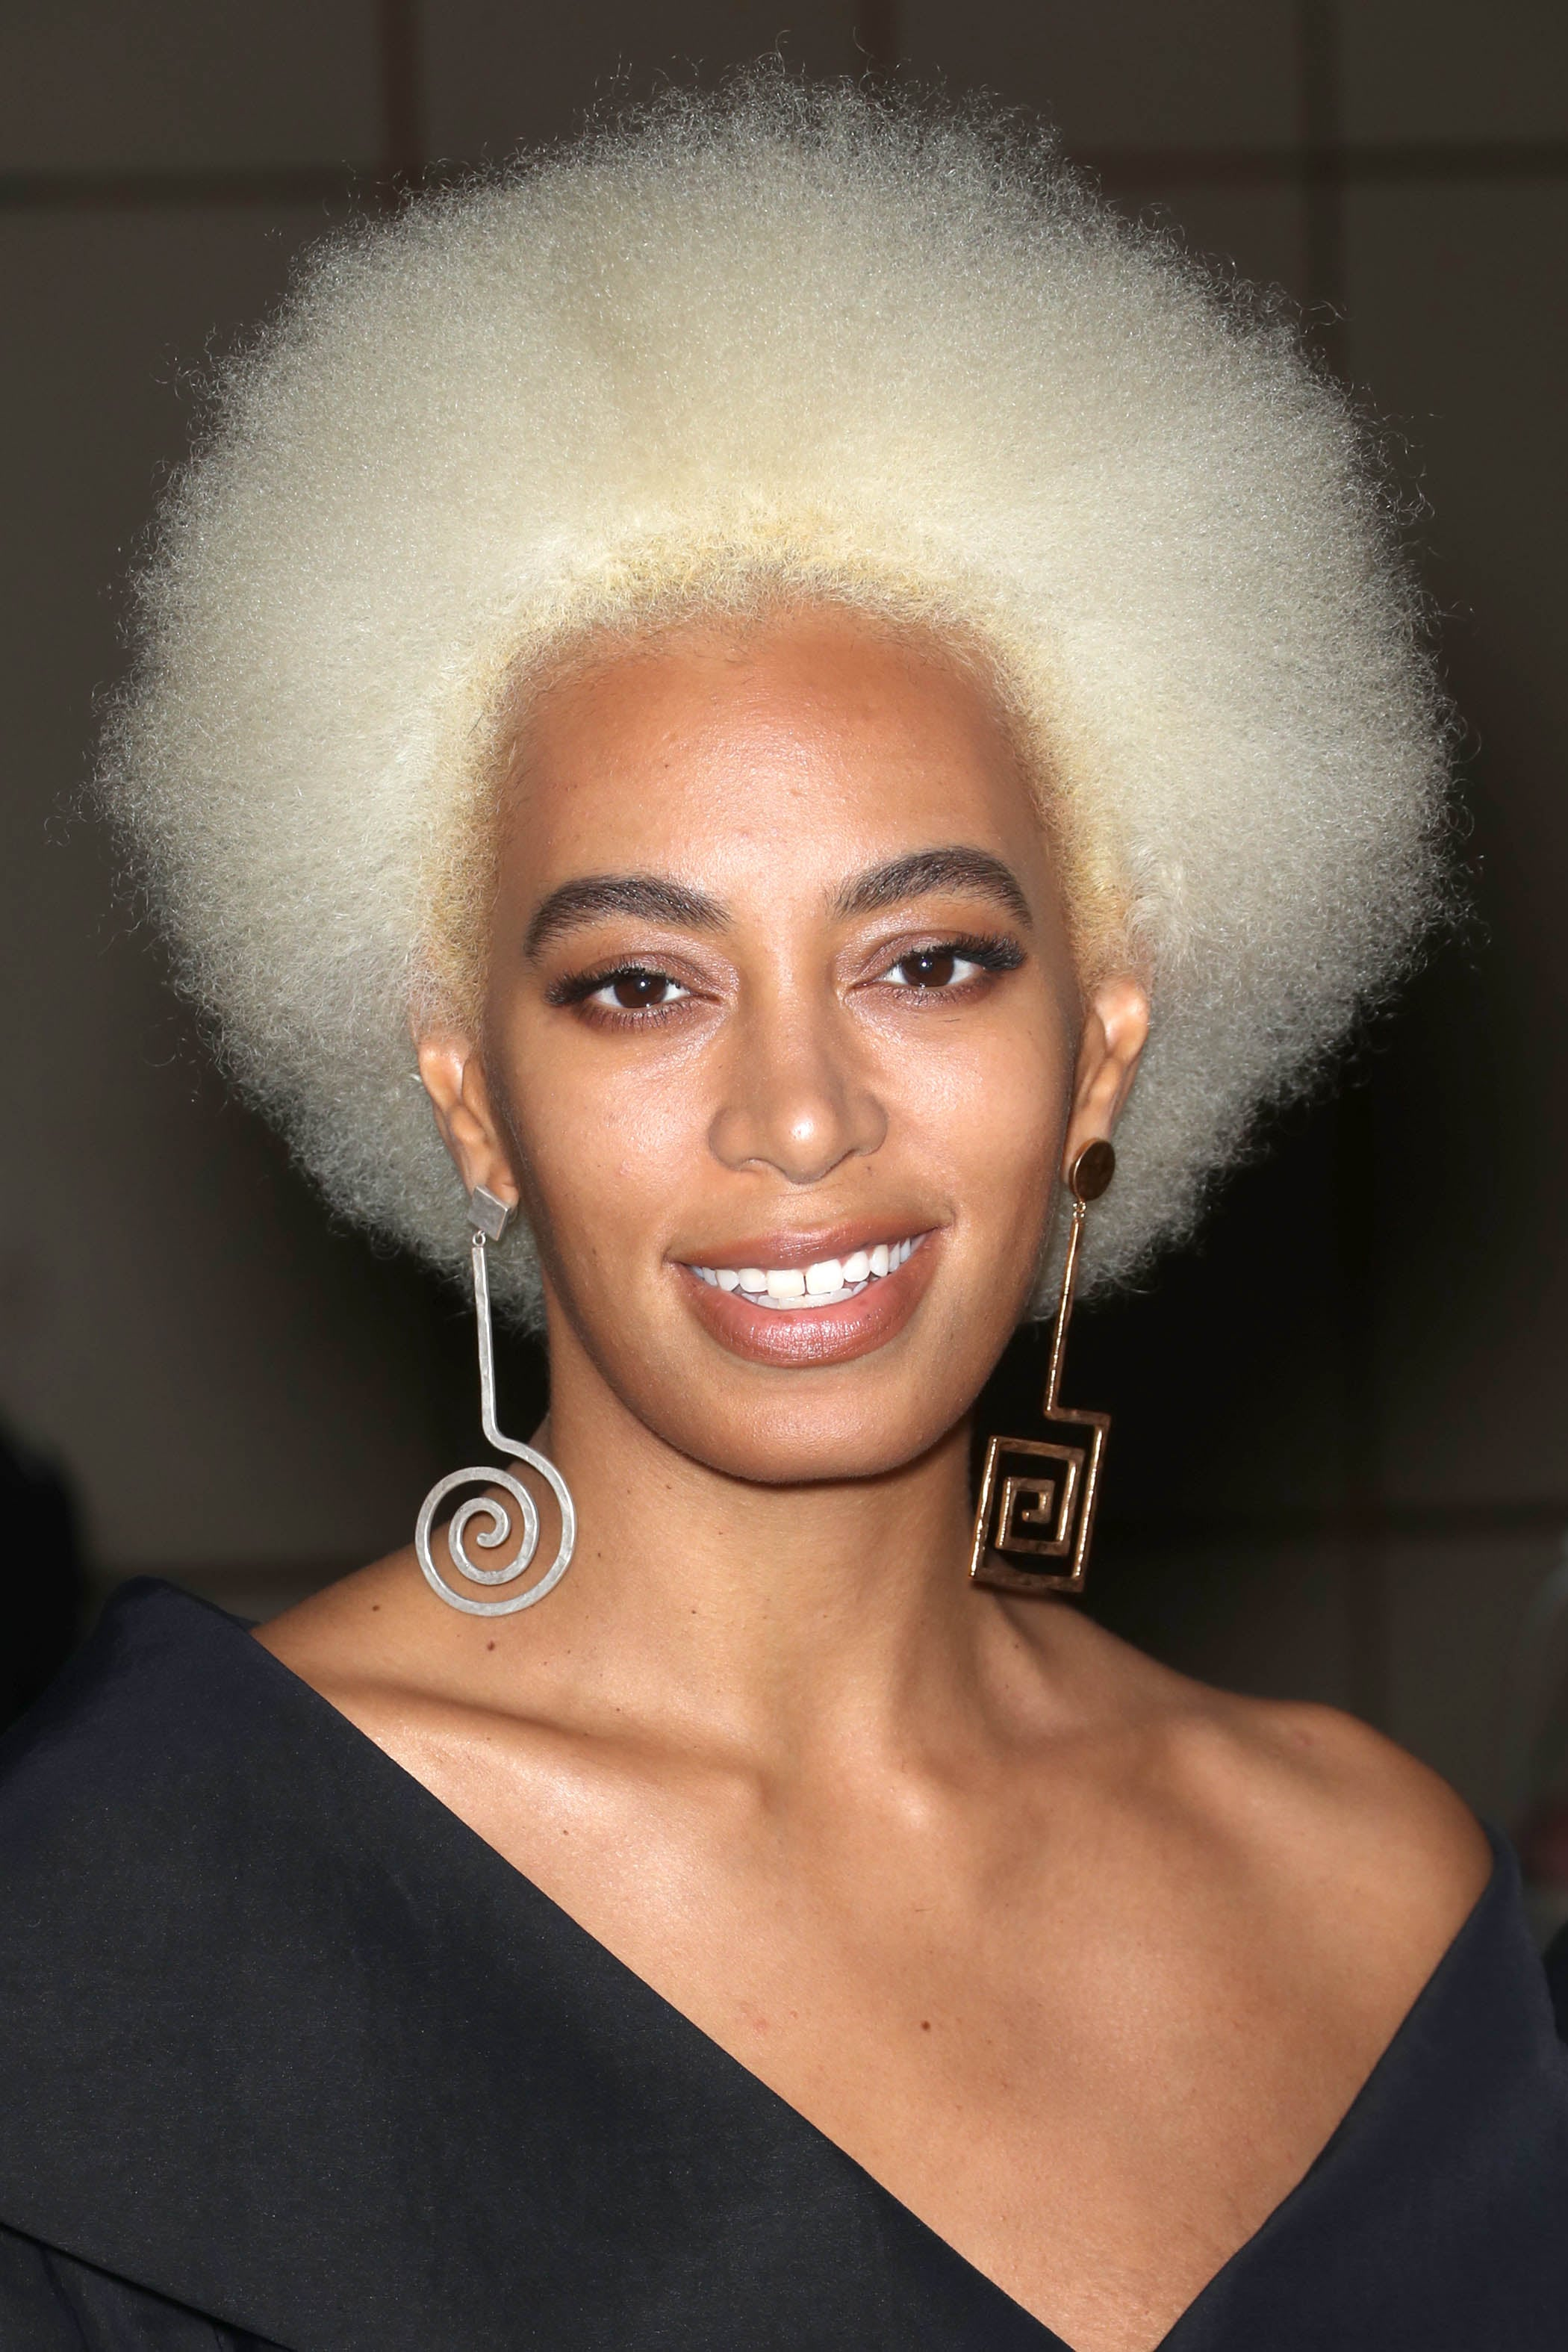 natural hairstyles for short hair: close up shot of solange with blonde afro hairstyle, wearing statement earrings and black outfit, posing on the red carpet